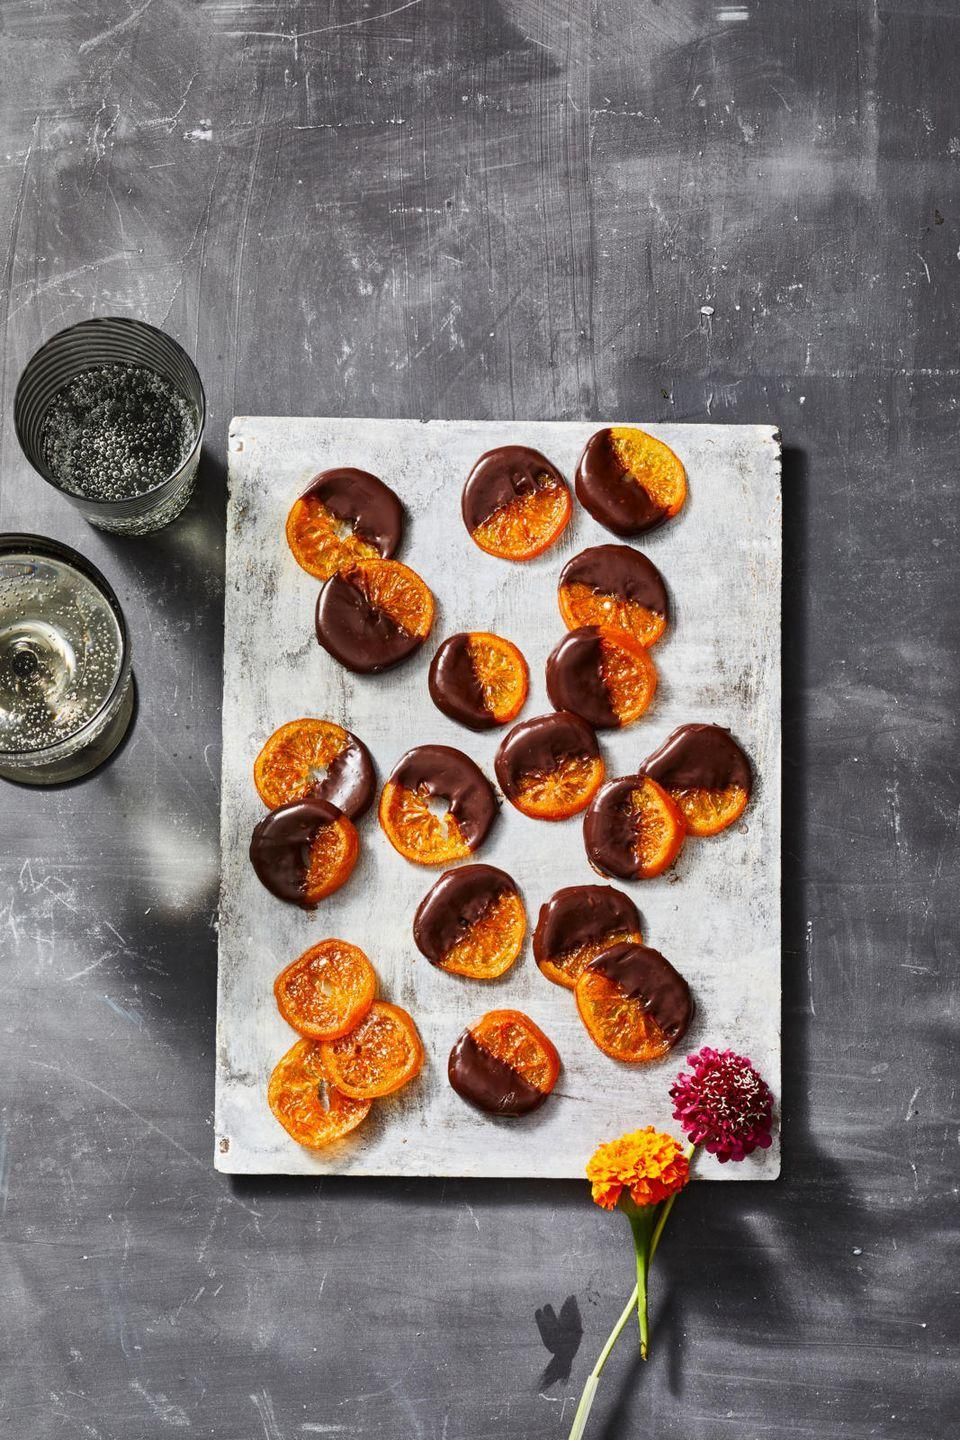 """<p>Dry slices of clementine in a low oven and dip in chocolate for a homemade sweet that beats out super sugary Halloween candy.</p><p><em><a href=""""https://www.goodhousekeeping.com/food-recipes/dessert/a37116518/candied-clementines-recipe/"""" rel=""""nofollow noopener"""" target=""""_blank"""" data-ylk=""""slk:Get the recipe for Candied Clementines »"""" class=""""link rapid-noclick-resp"""">Get the recipe for Candied Clementines »</a></em></p>"""